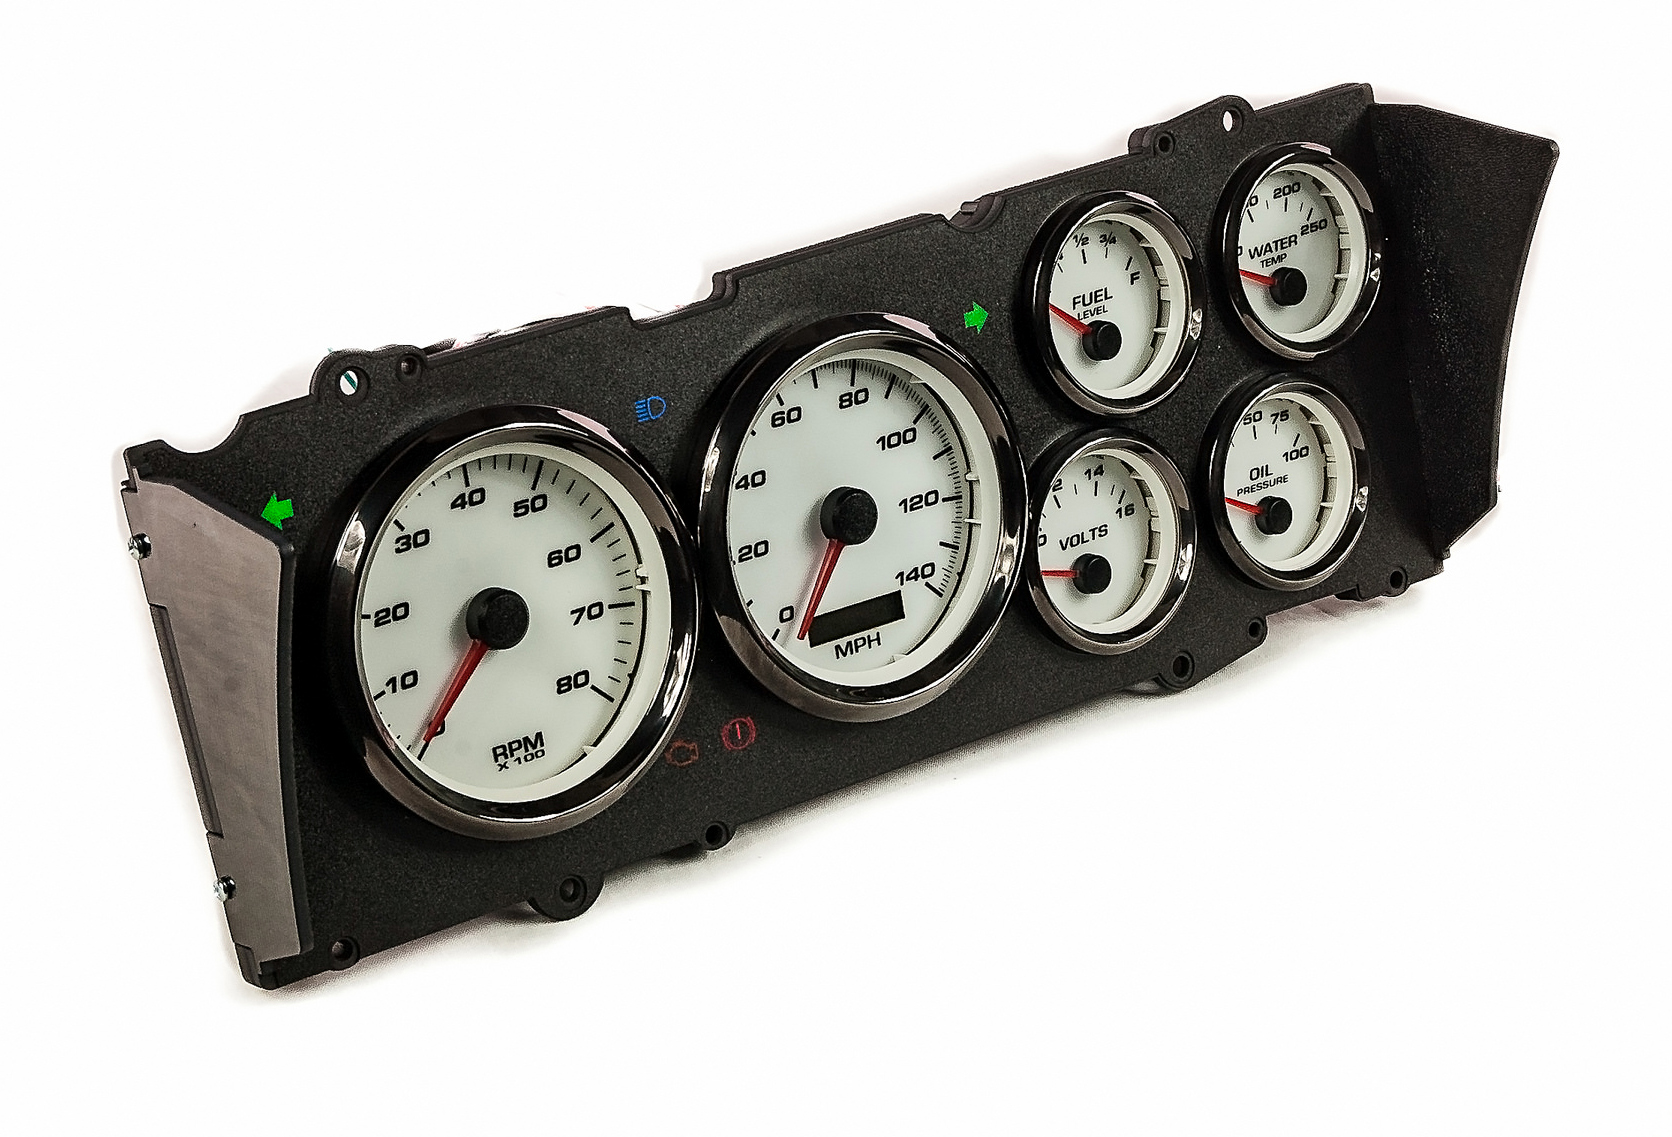 cutalss g-body afternmarket gauges instruments